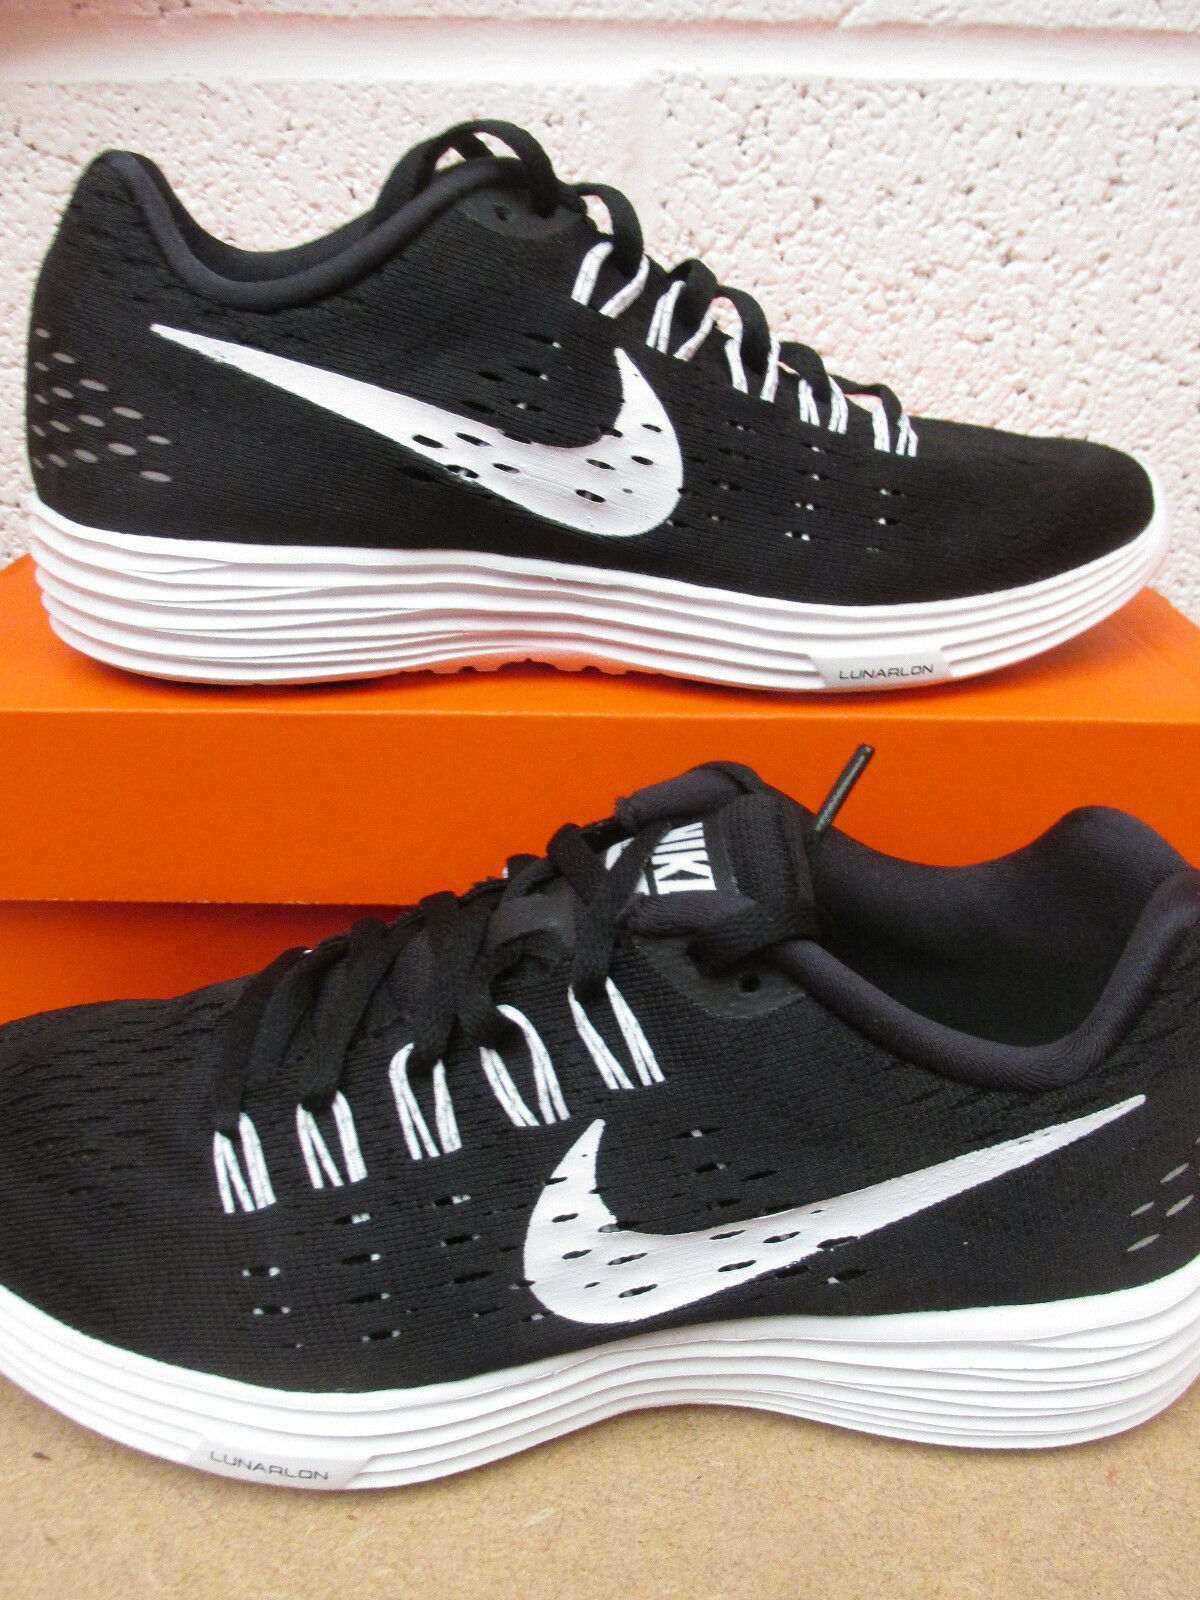 Nike Lunartempo femmes running trainers 705462 001 baskets chaussures